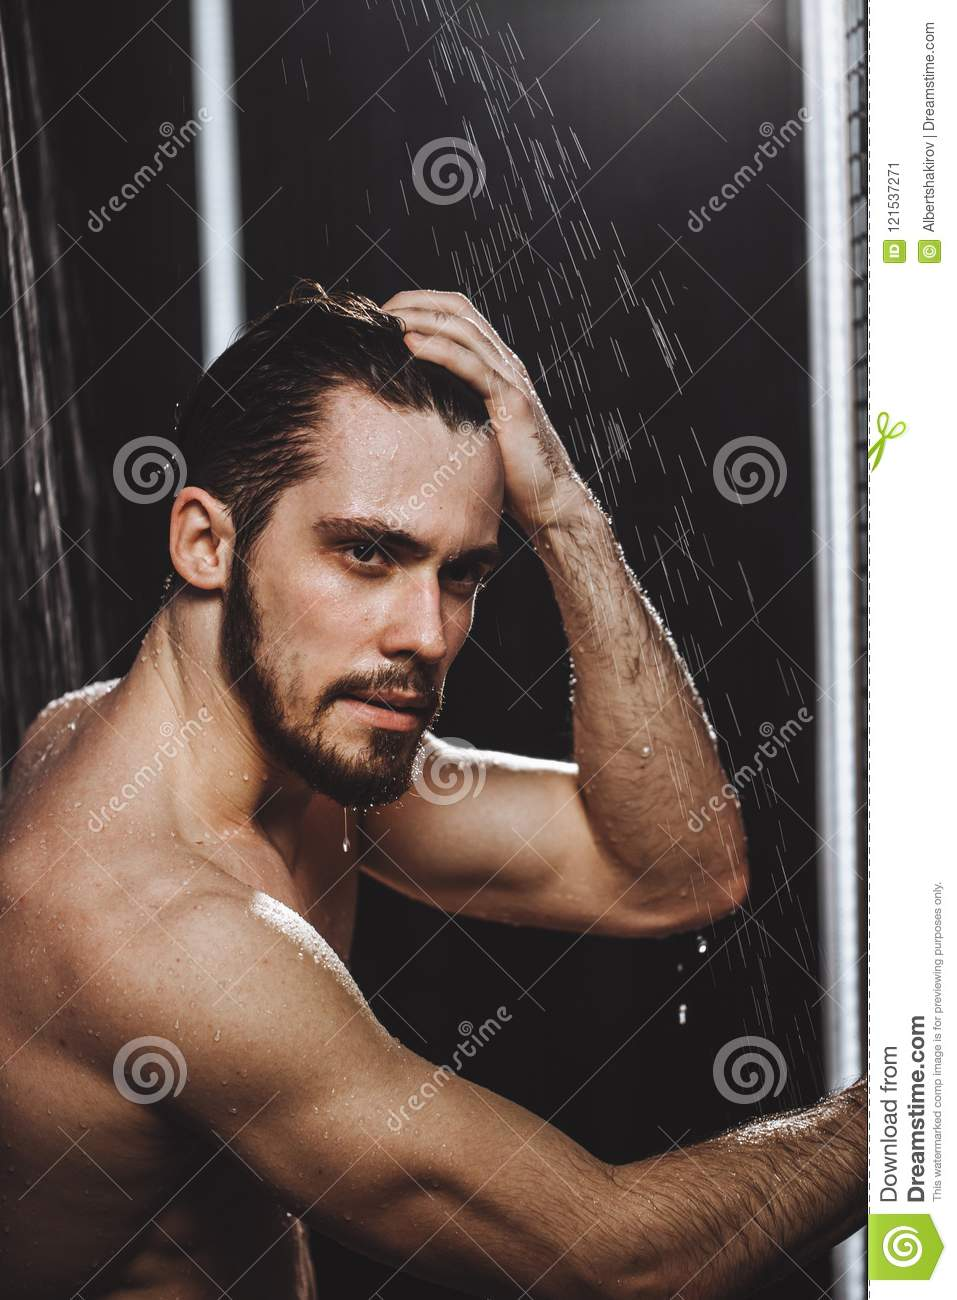 That can sexy black male in the shower share